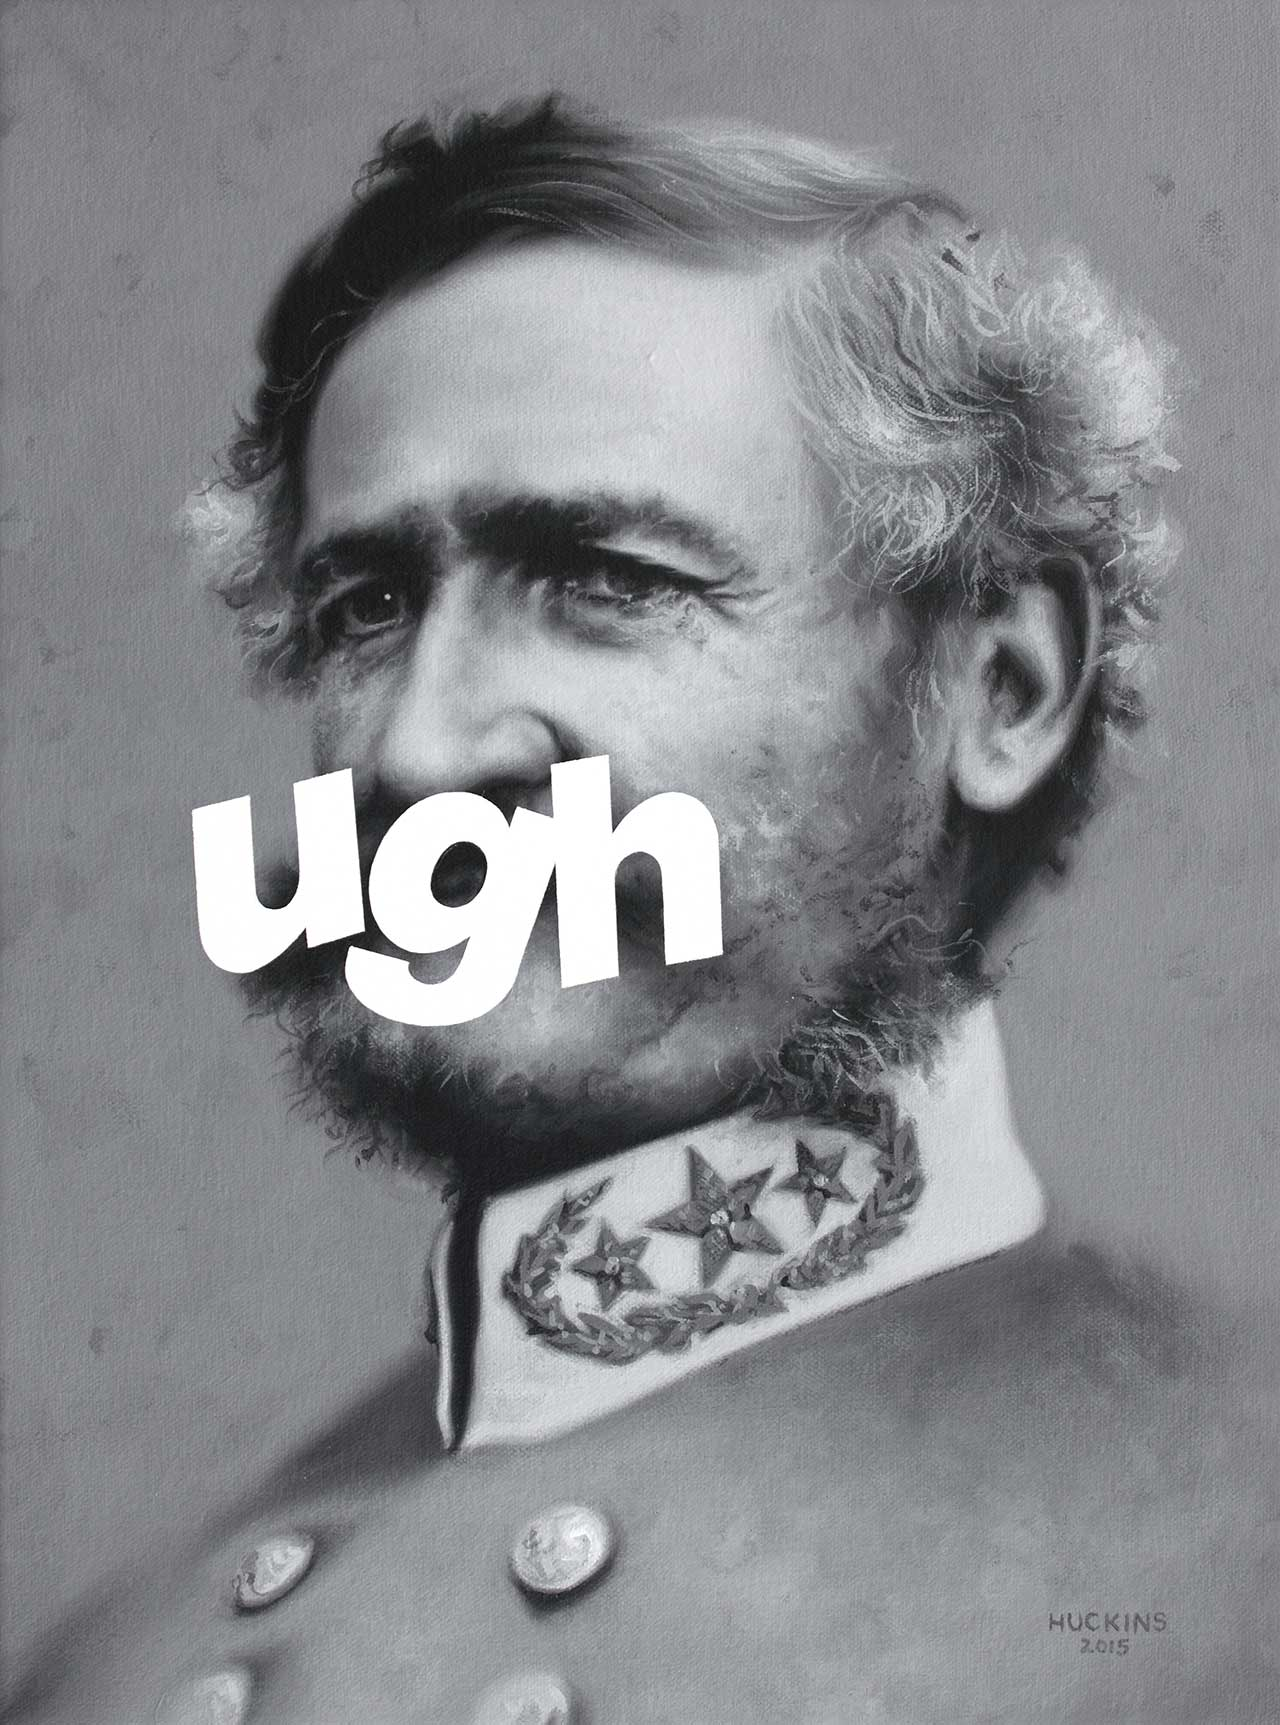 Shawn Huckins, General Henry H Sibley: UGH, 2015. Acrylic on canvas, 16 x 12 in (41 x 30 cm).